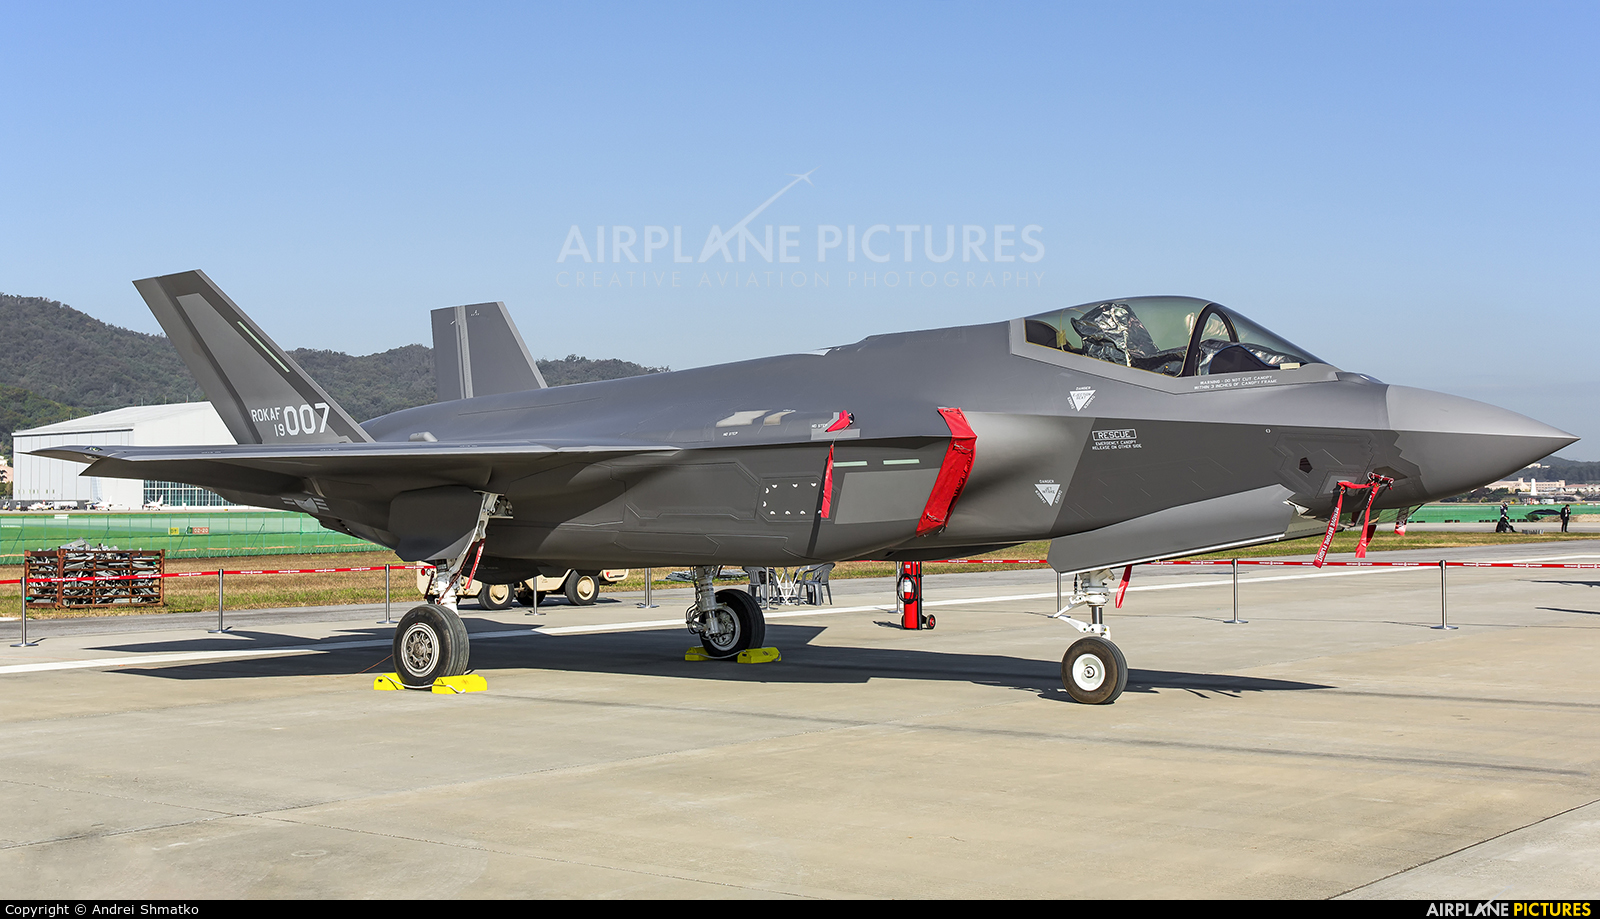 Korea (South) - Air Force 19-007 aircraft at Seongnam AB